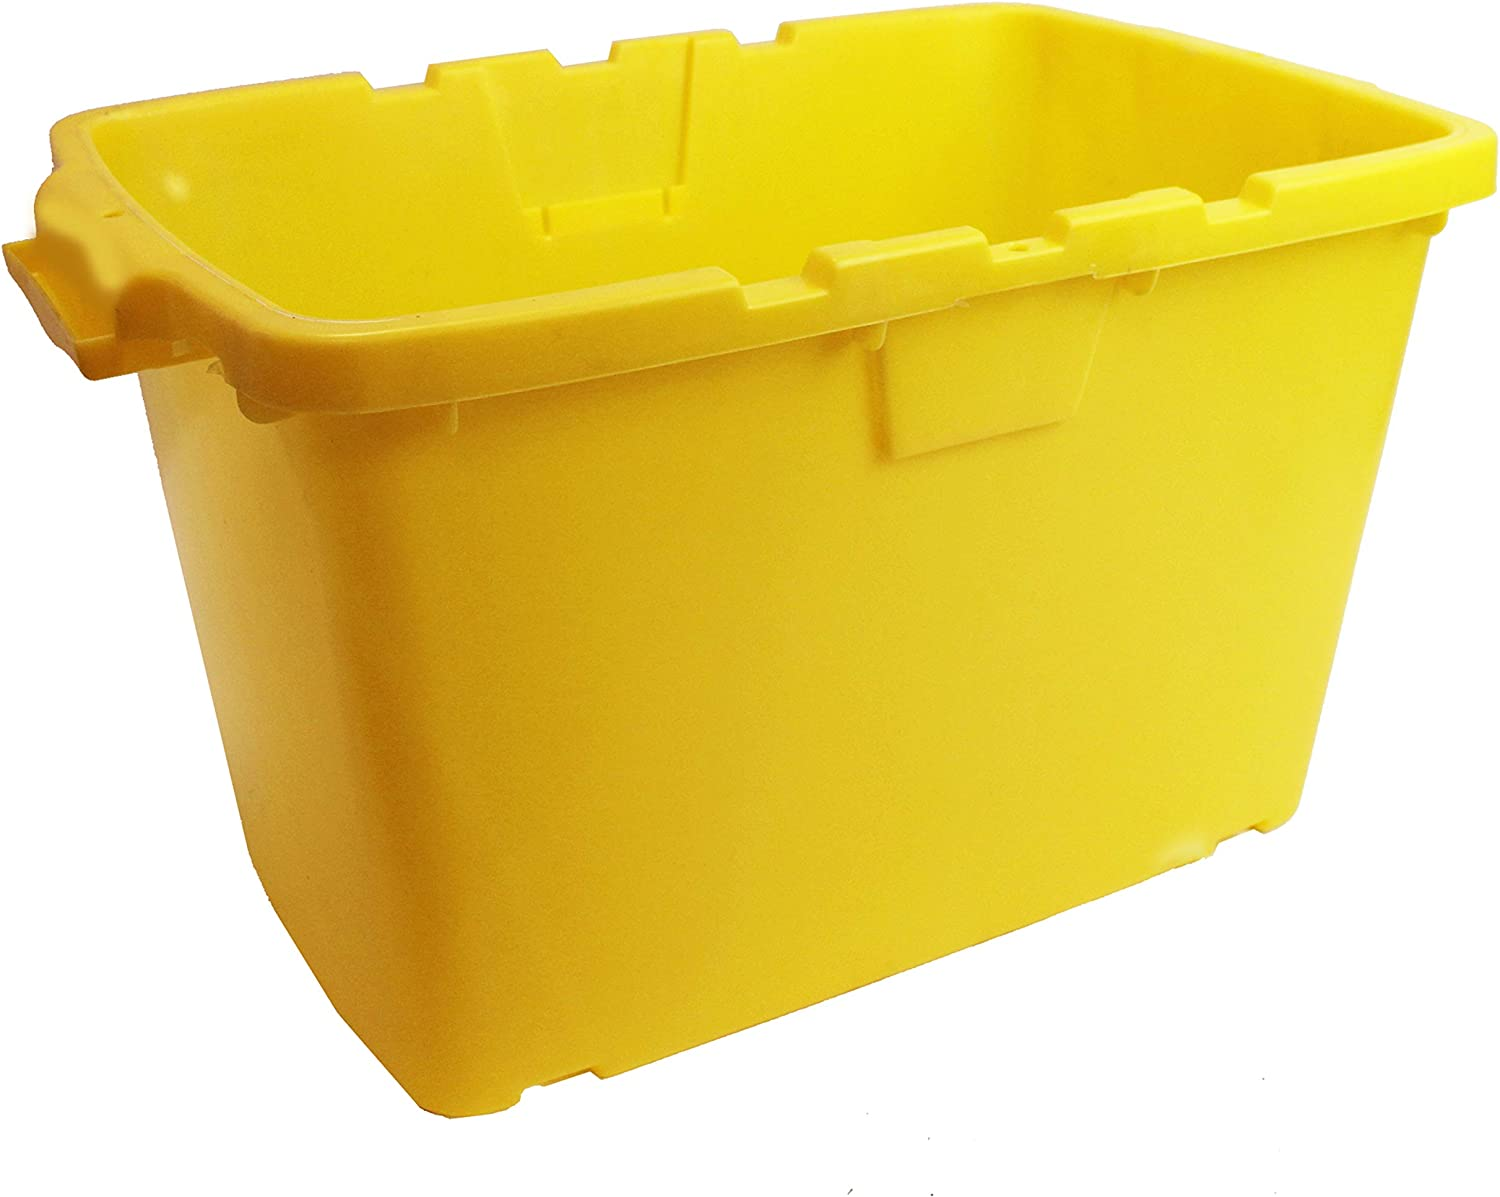 Box /& Black Lid All-Green Coral 55 Litre Yellow Outdoor Kerbside Waste Recycling Box//Storage Box With Various Lid Combinations